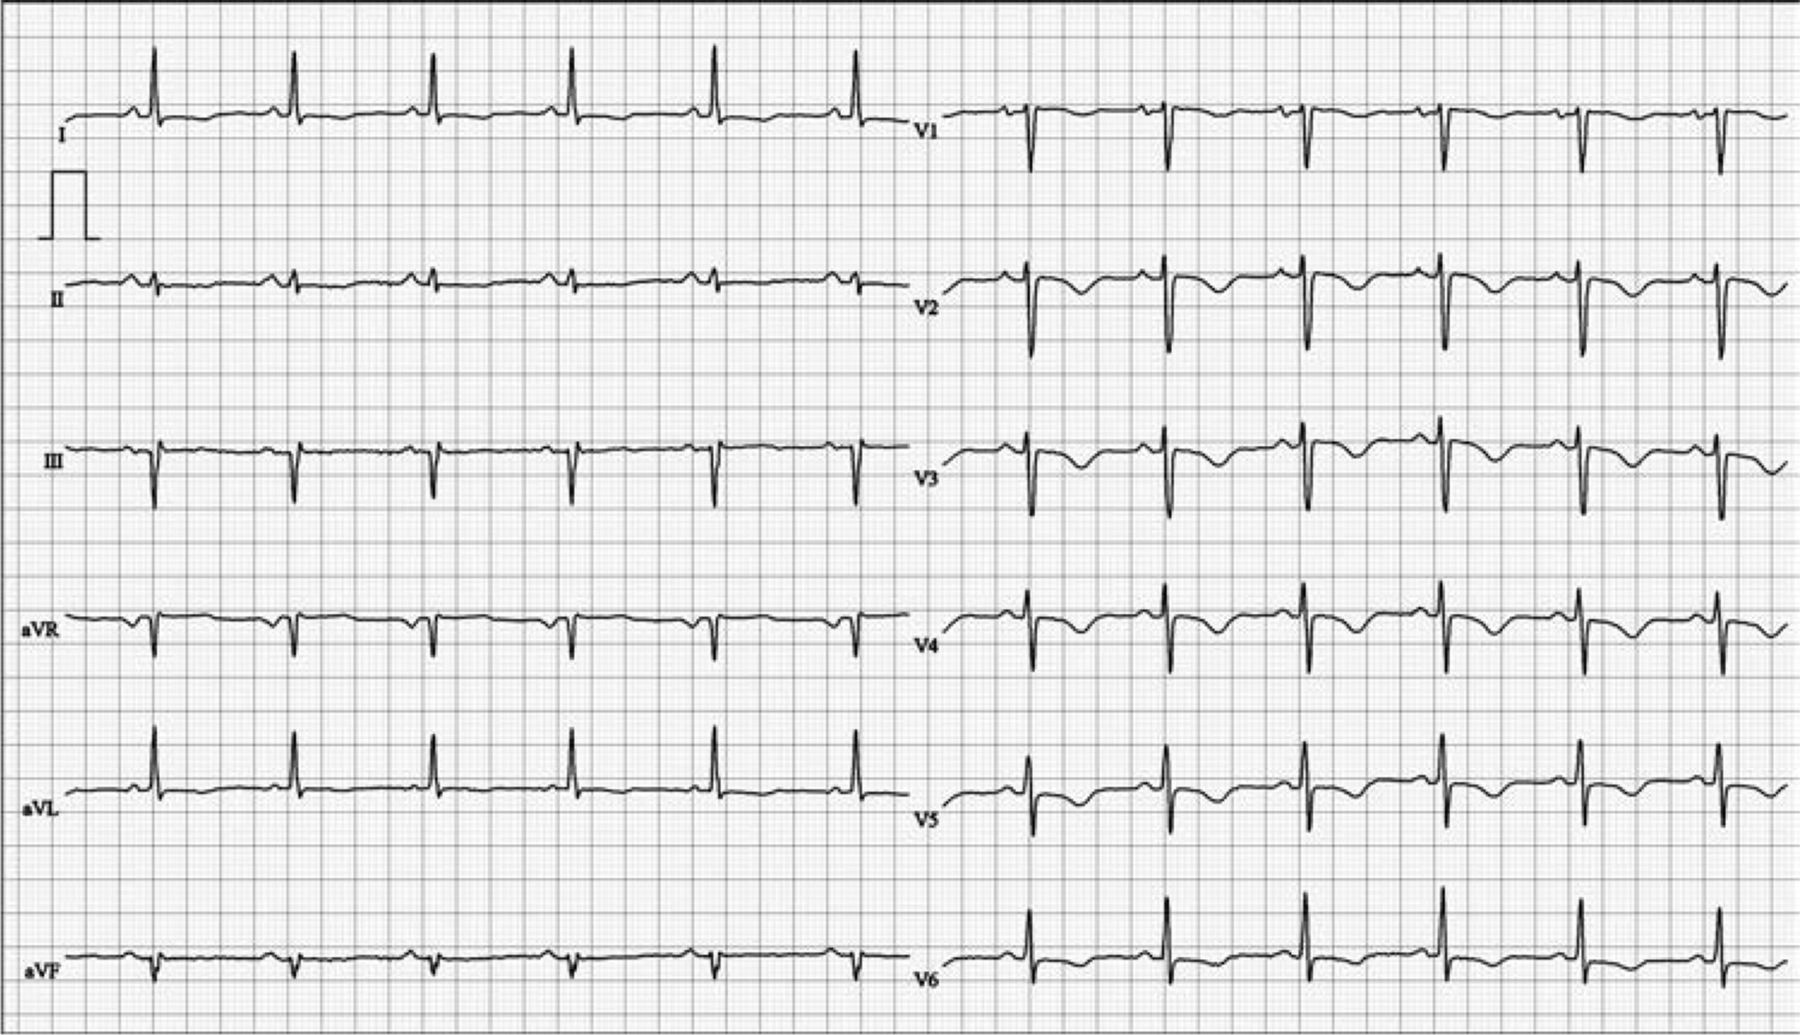 Significance Of Deep T Wave Inversions In Asymptomatic